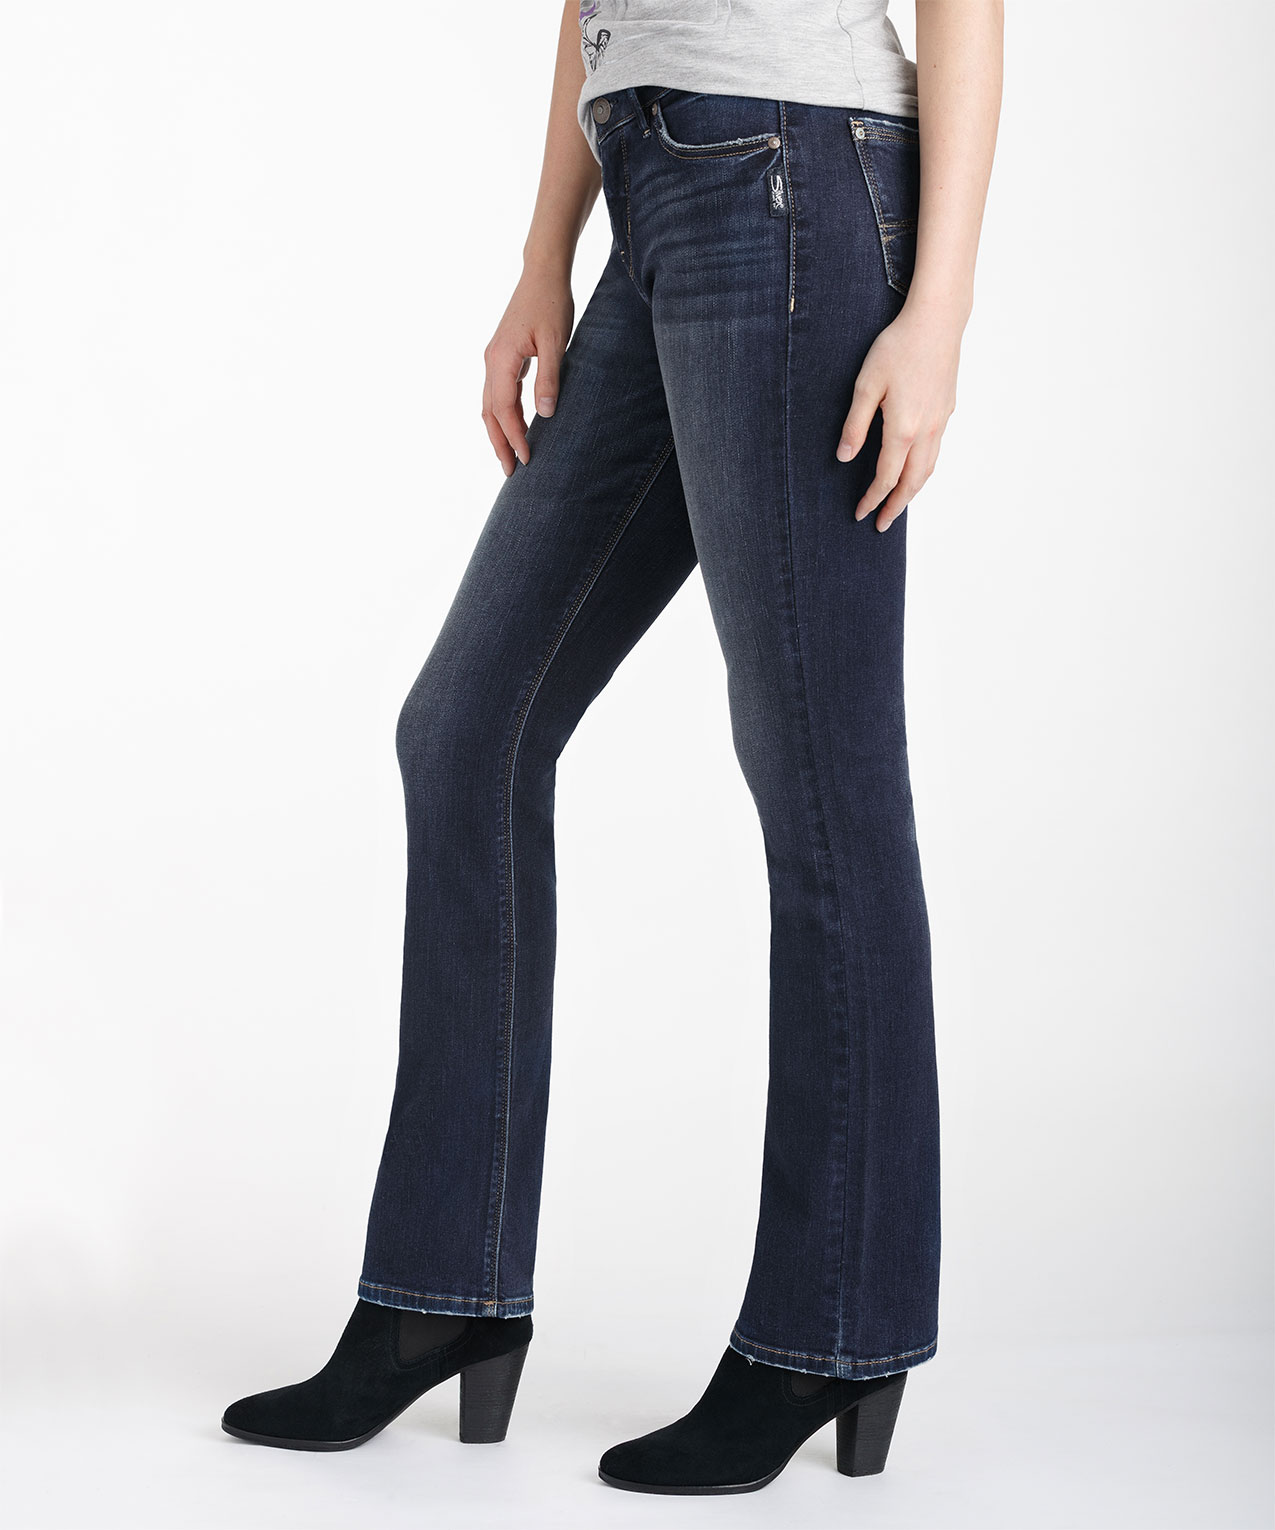 Silver Jeans Co Avery Slim Bootcut Jean Rickis